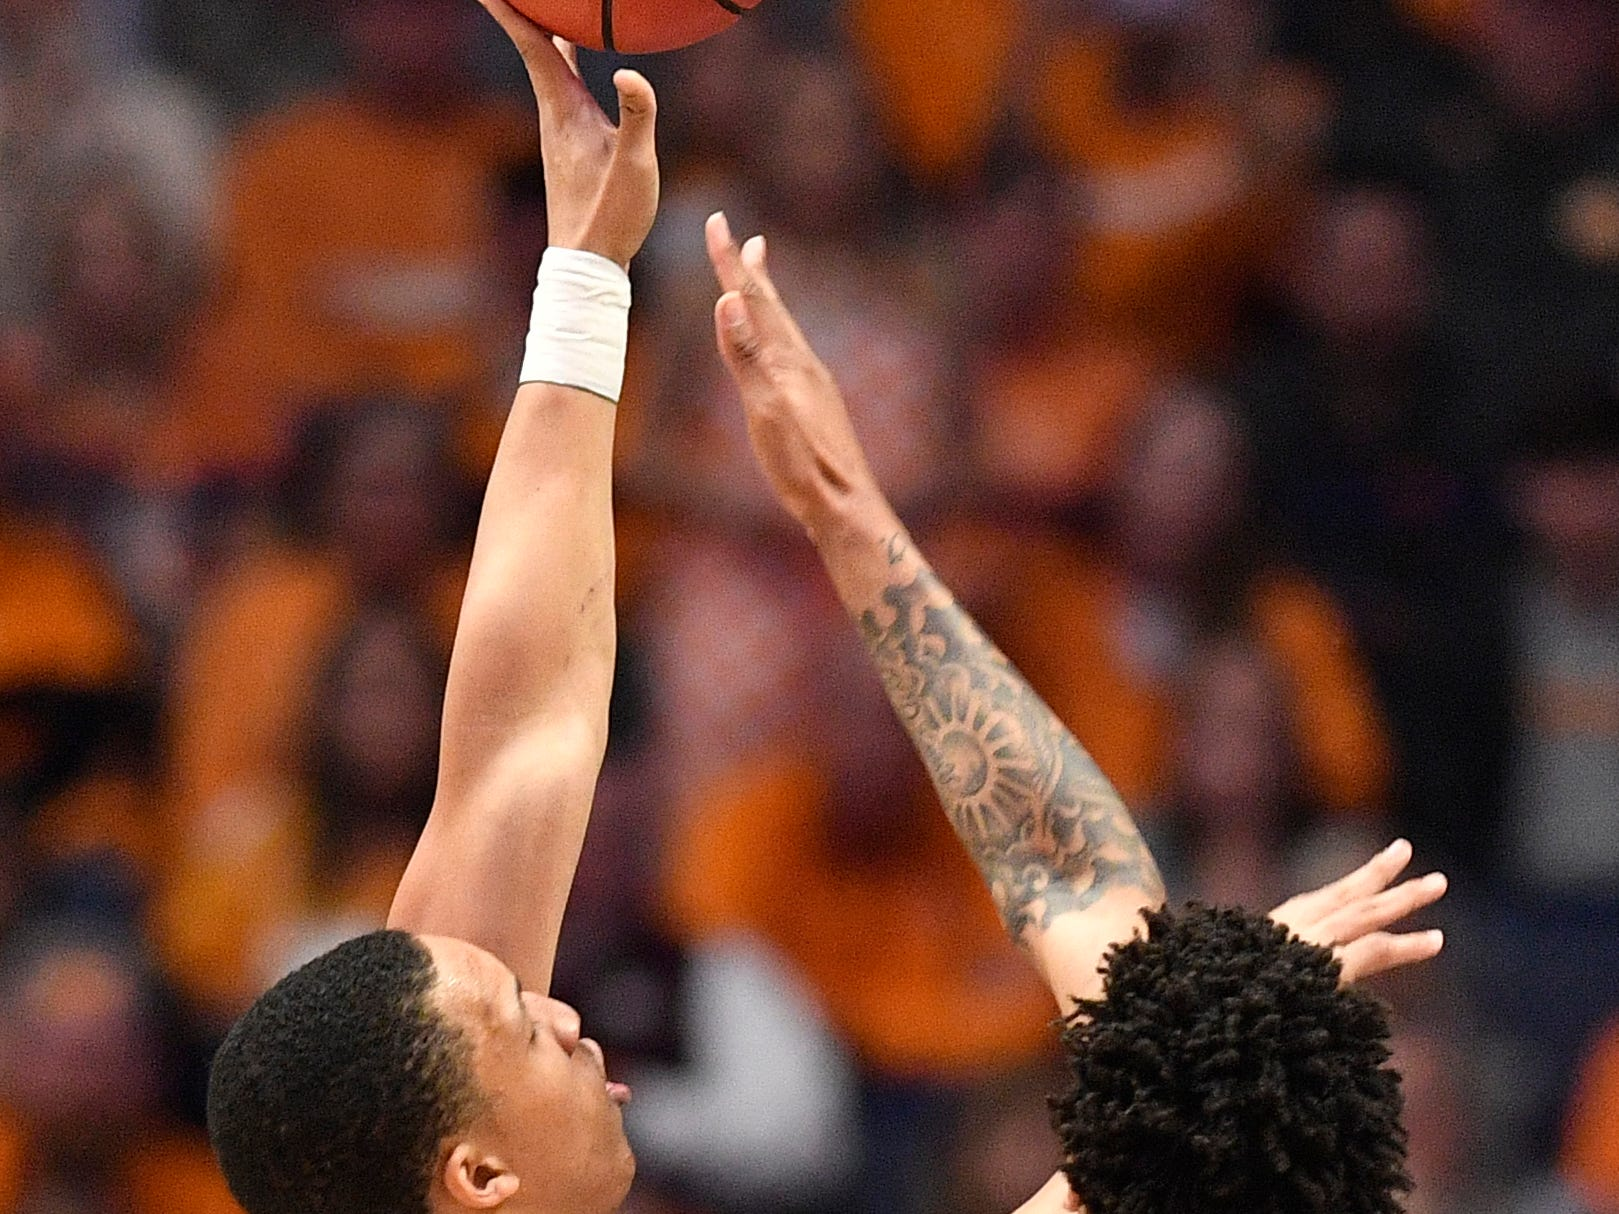 Tennessee forward Grant Williams (2) goes up for a shot against Auburn forward Chuma Okeke (5) during the first half of the SEC Men's Basketball Tournament championship game at Bridgestone Arena in Nashville, Tenn., Sunday, March 17, 2019.